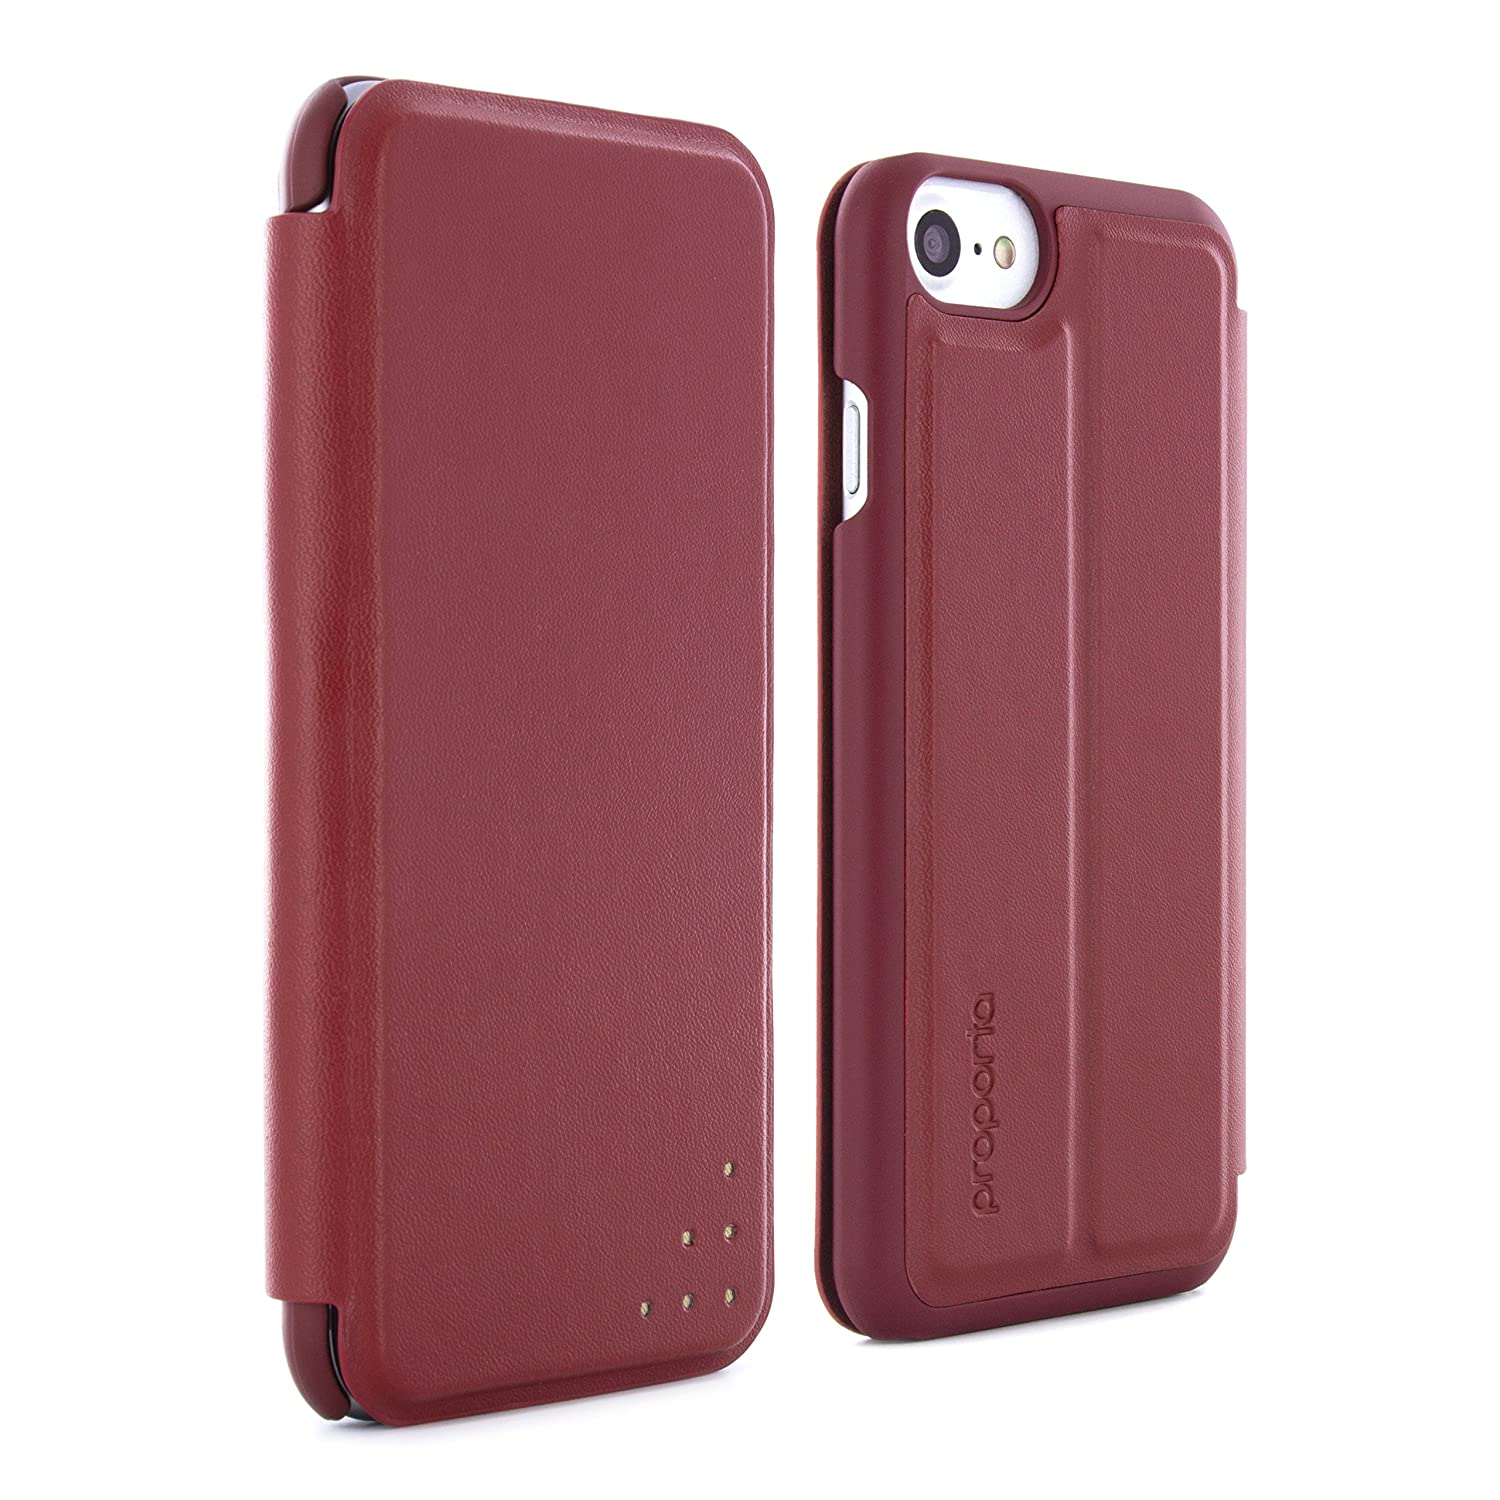 promo code 2259f d08d8 PROPORTA Branded Ultra Slim HEAVY-DUTY Case for Apple iPhone 8, 7, 6S -  Berry / Rose Gold